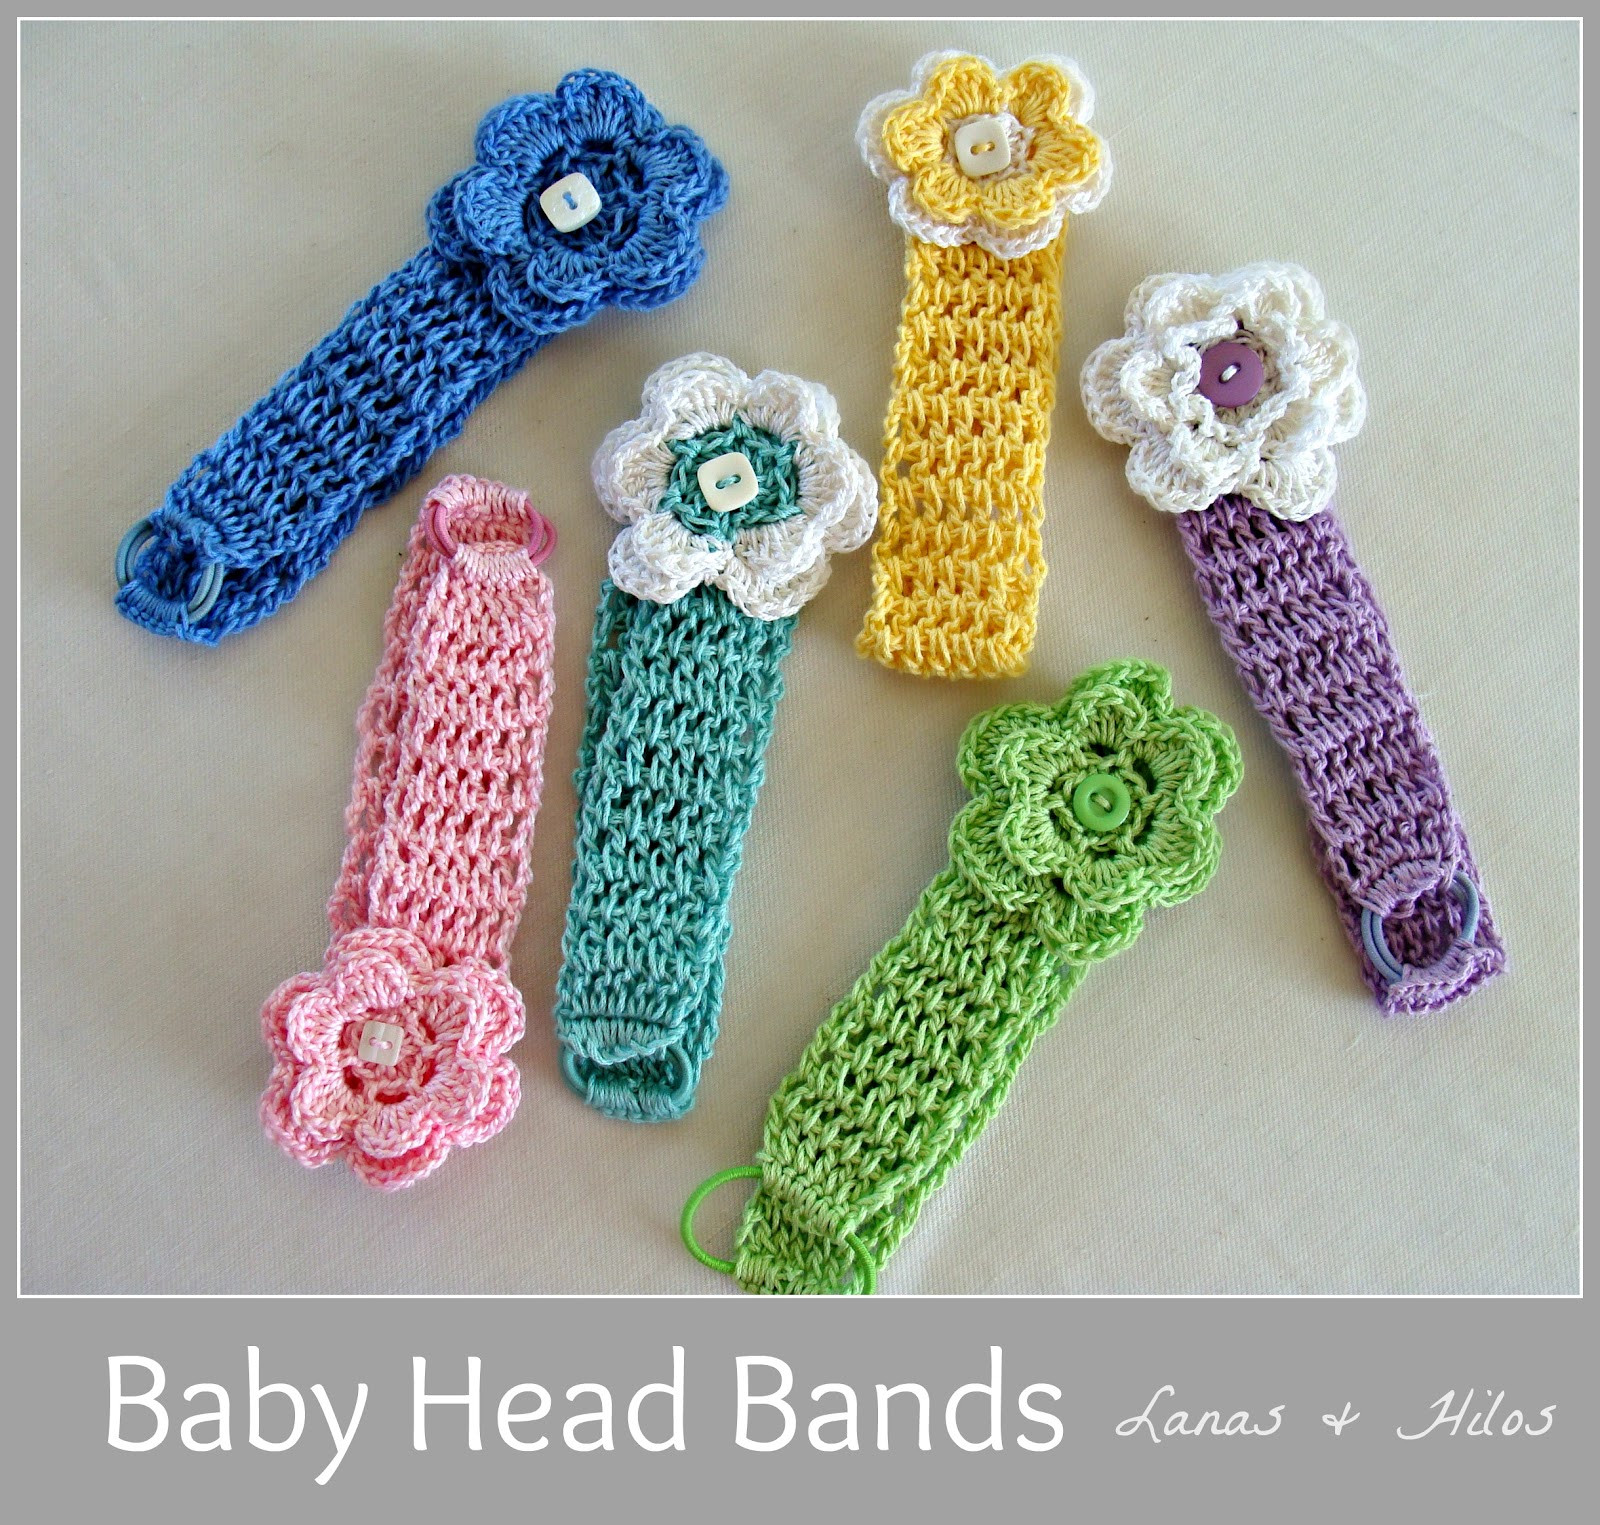 Awesome Lanas Hilos Baby Head Bands Crochet Bands Of Adorable 46 Pics Crochet Bands